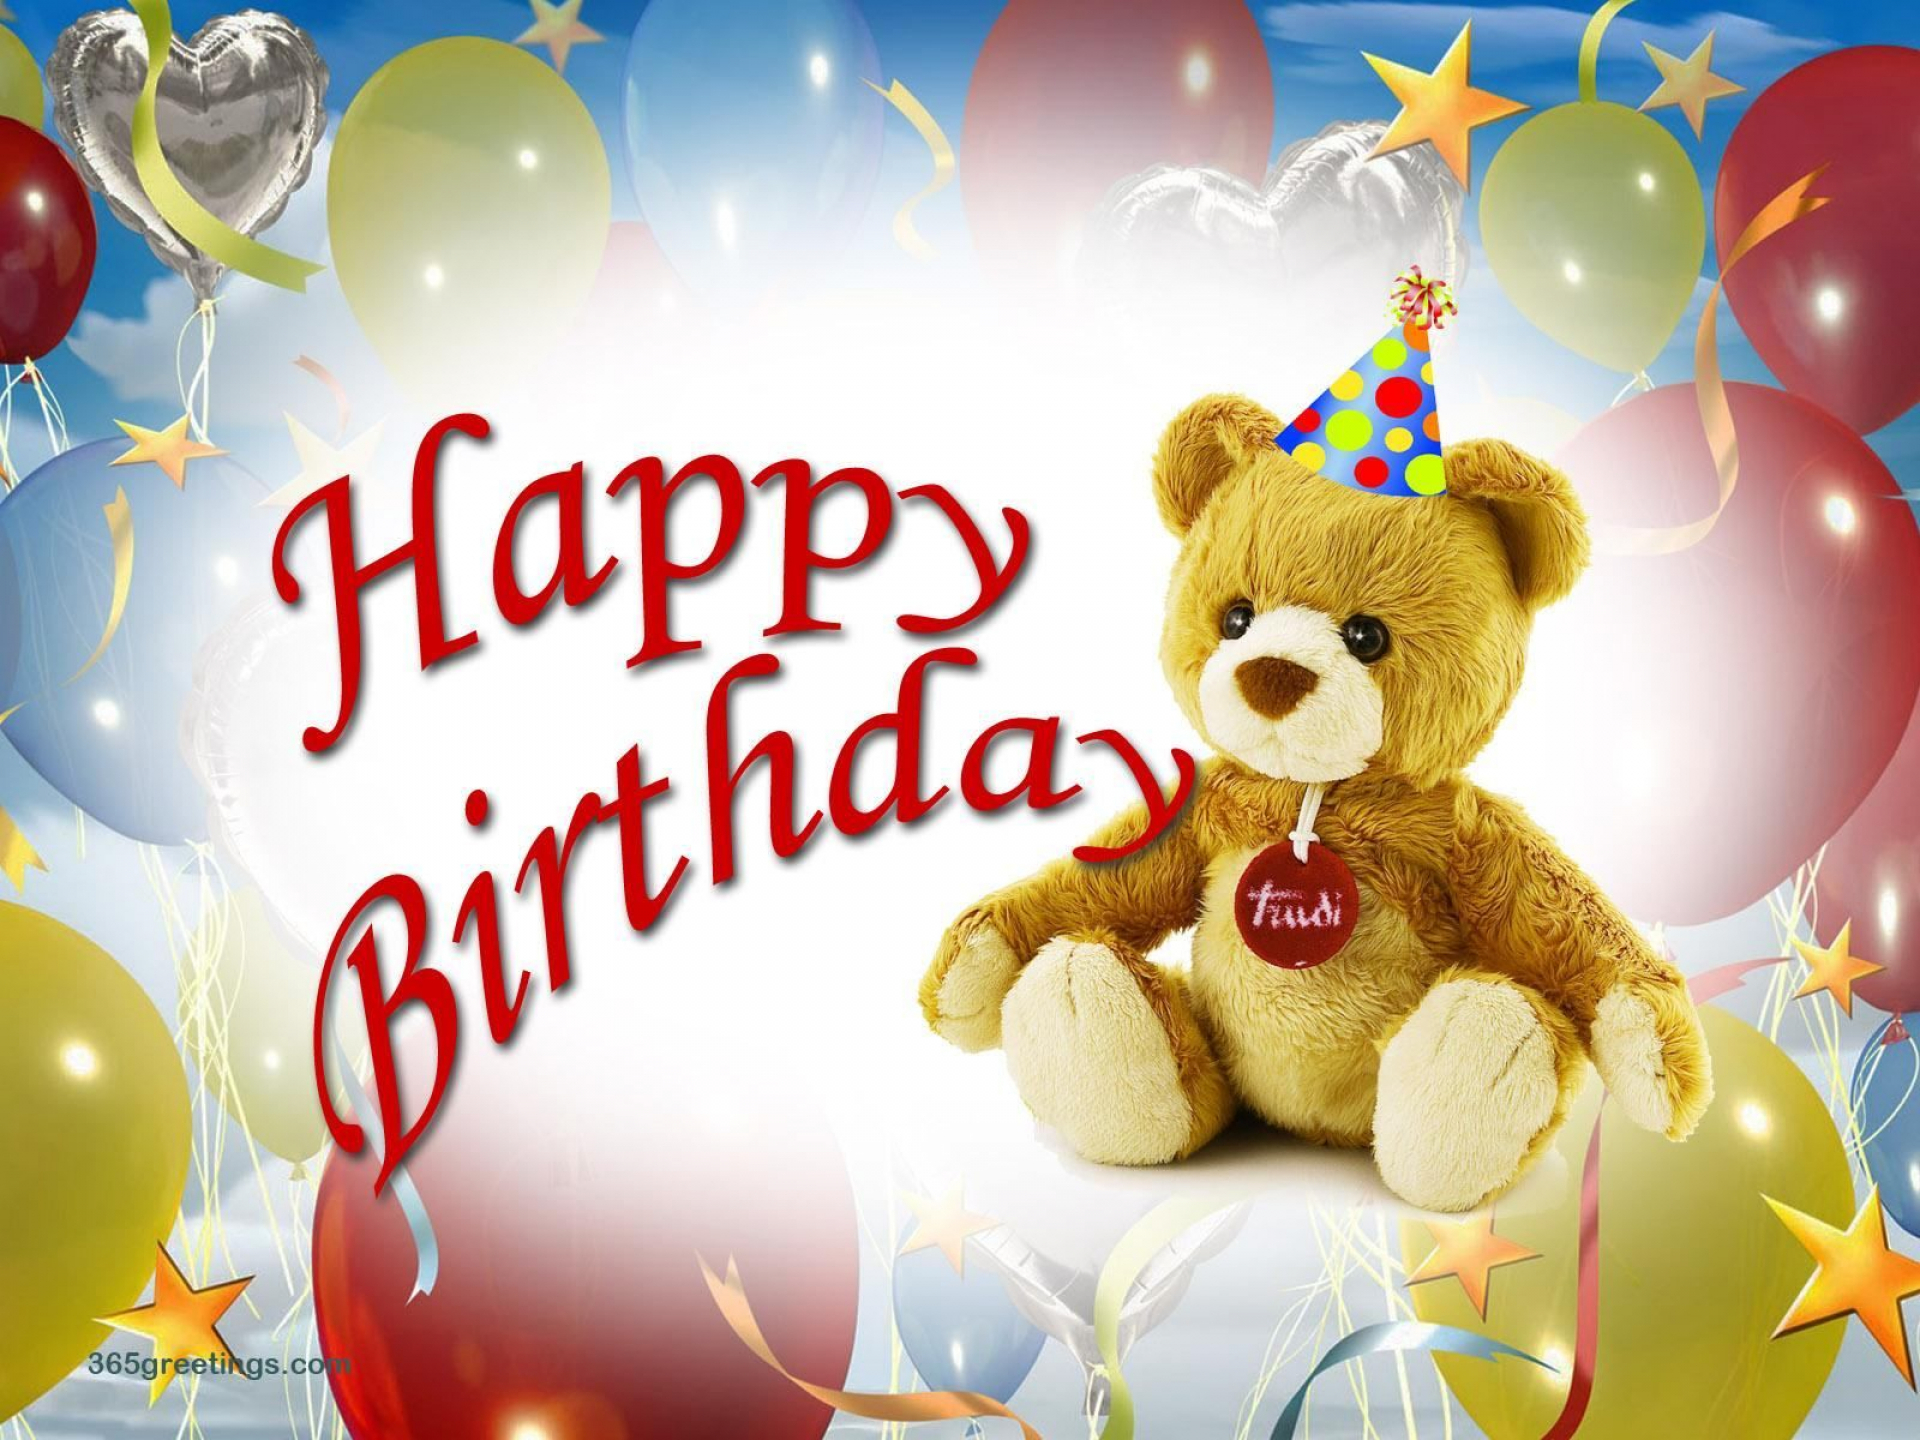 happy birthday image download for mobile ; www-happy-birthday-wallpaper-free-download-da0e01160ae85063f9a491fcd9cb3090